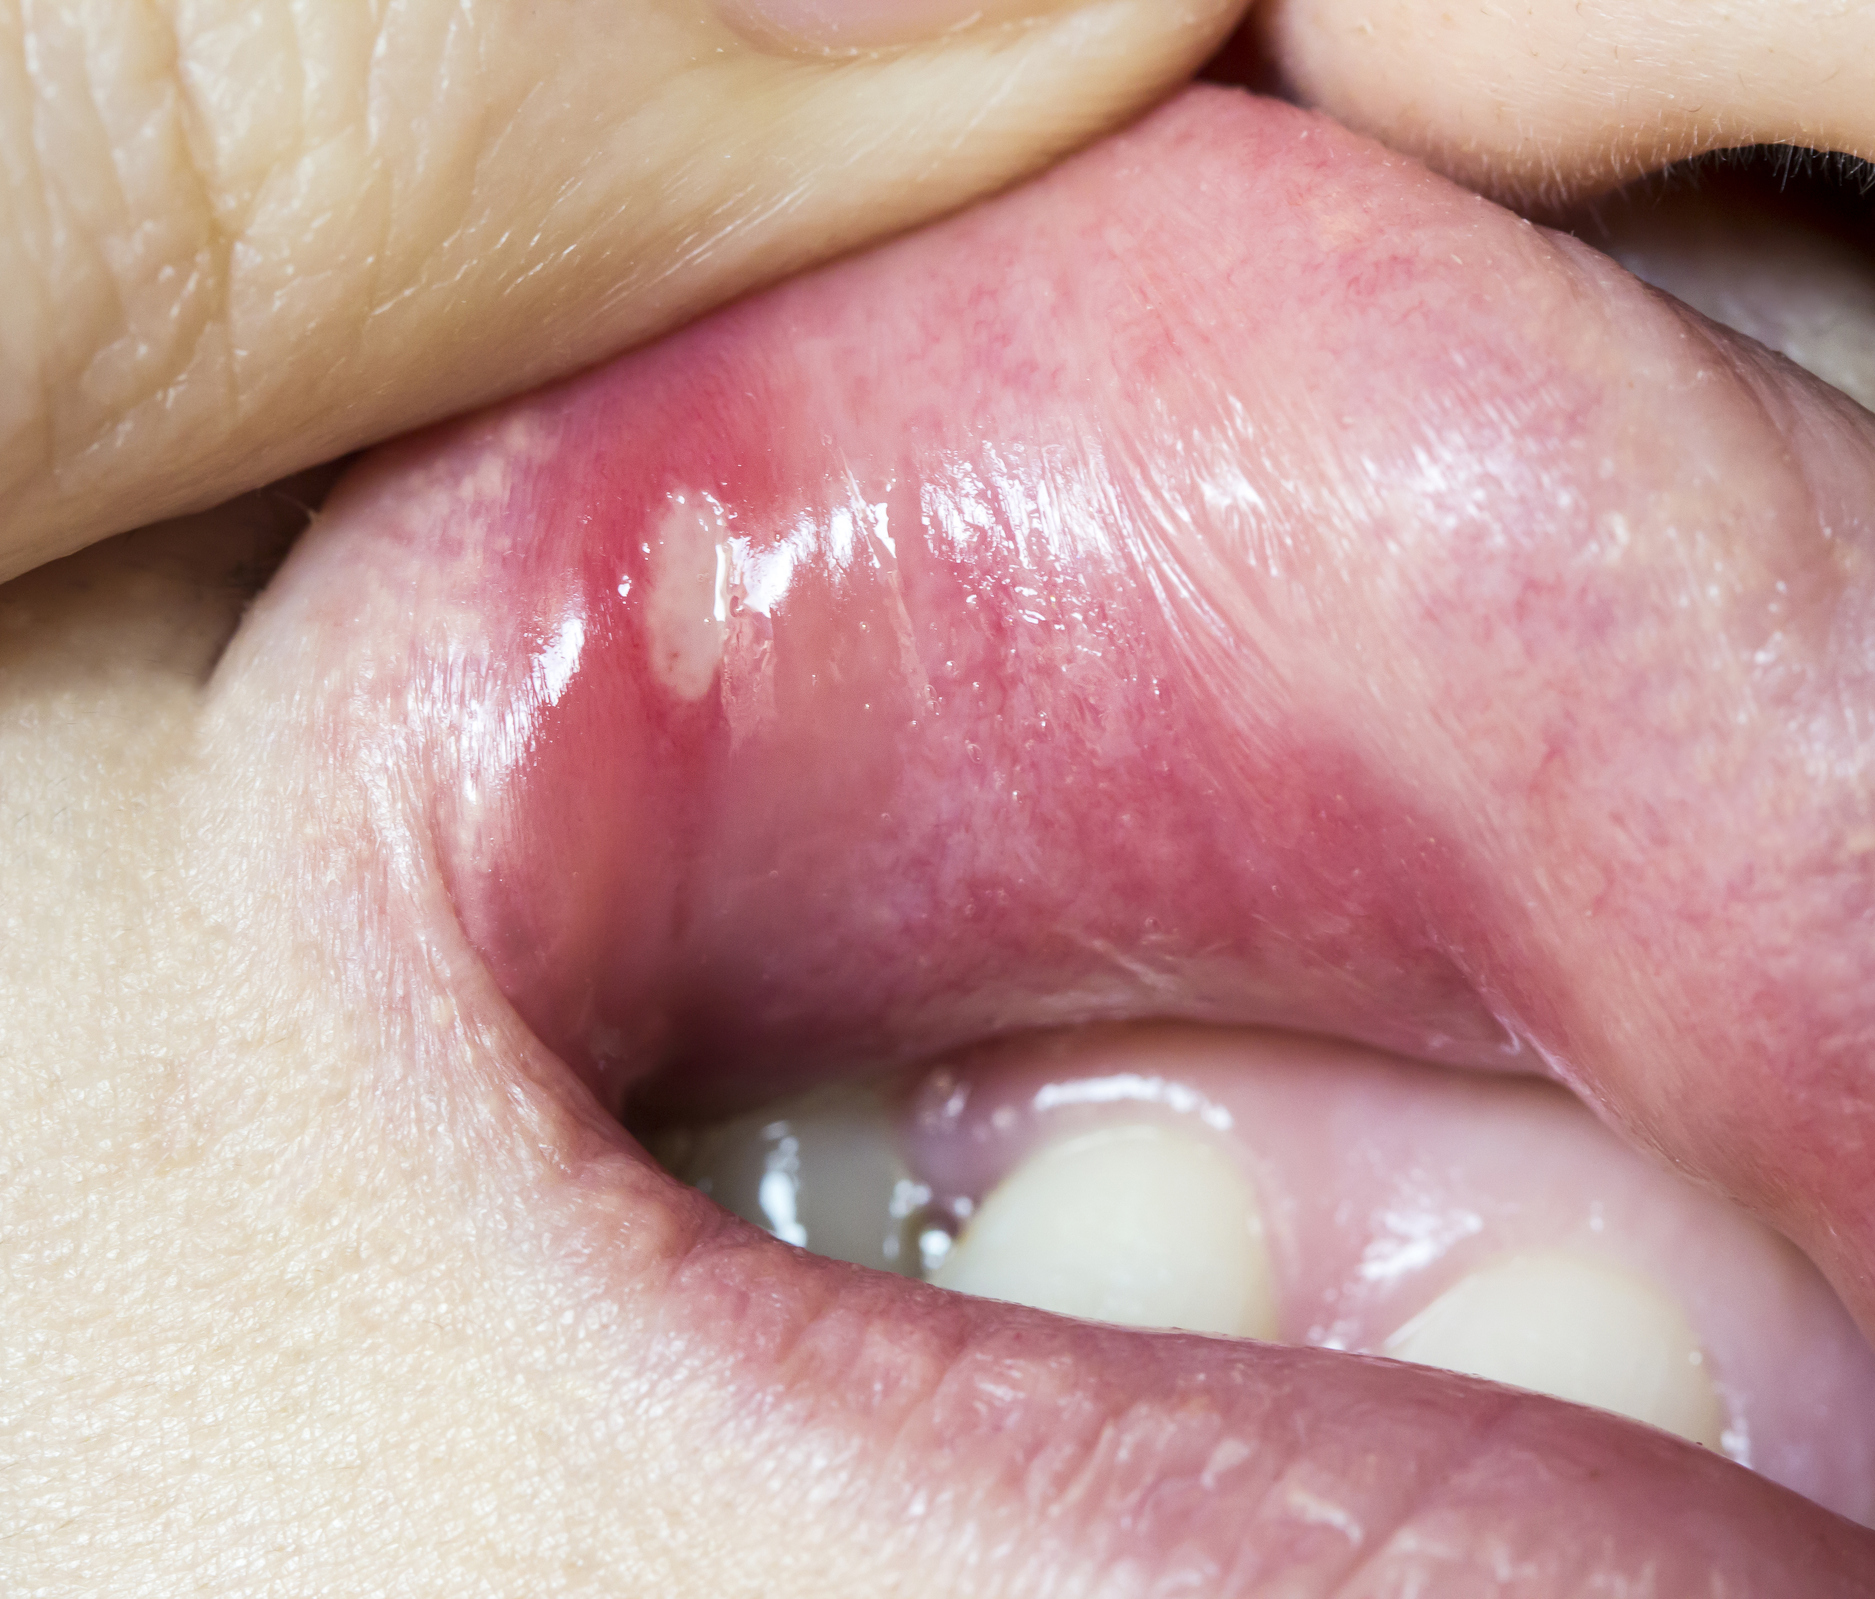 Human papillomavirus symptoms in mouth